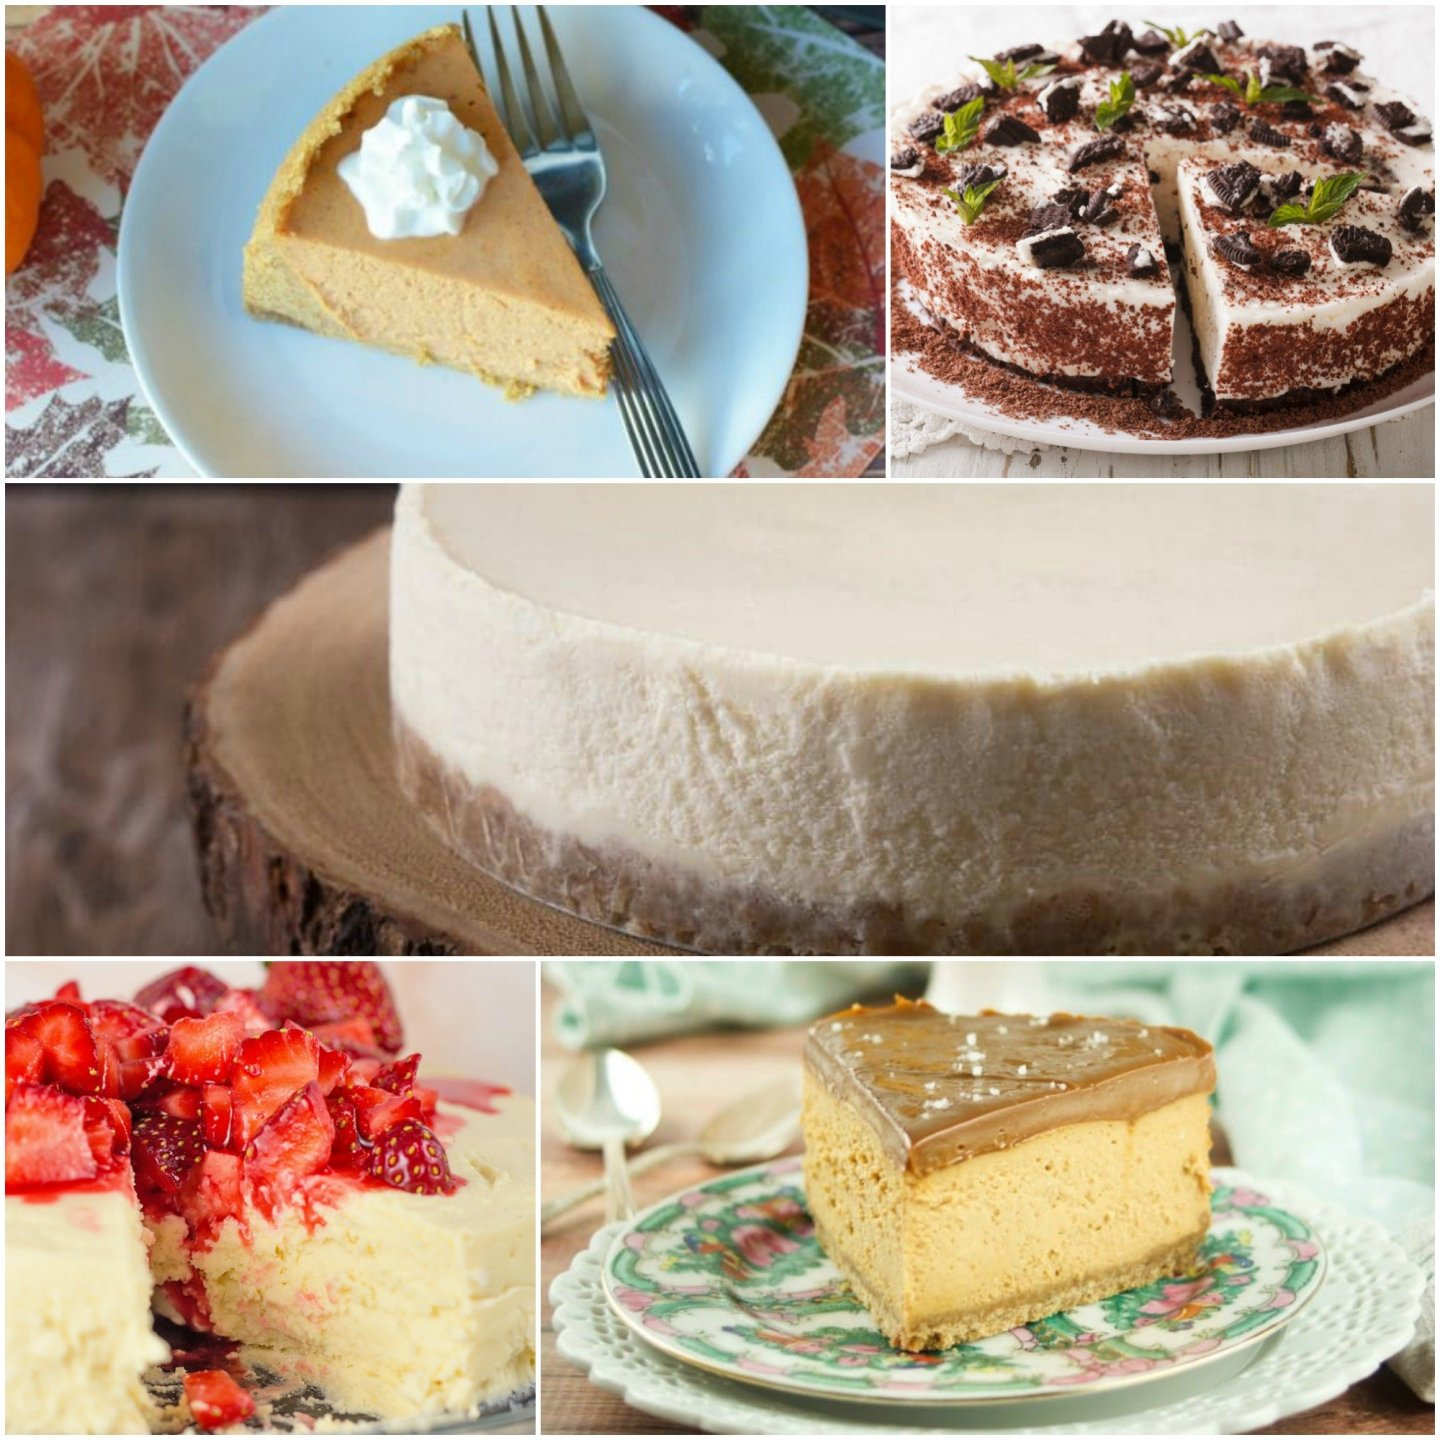 INSTANT-POT-CHEESECAKE-3